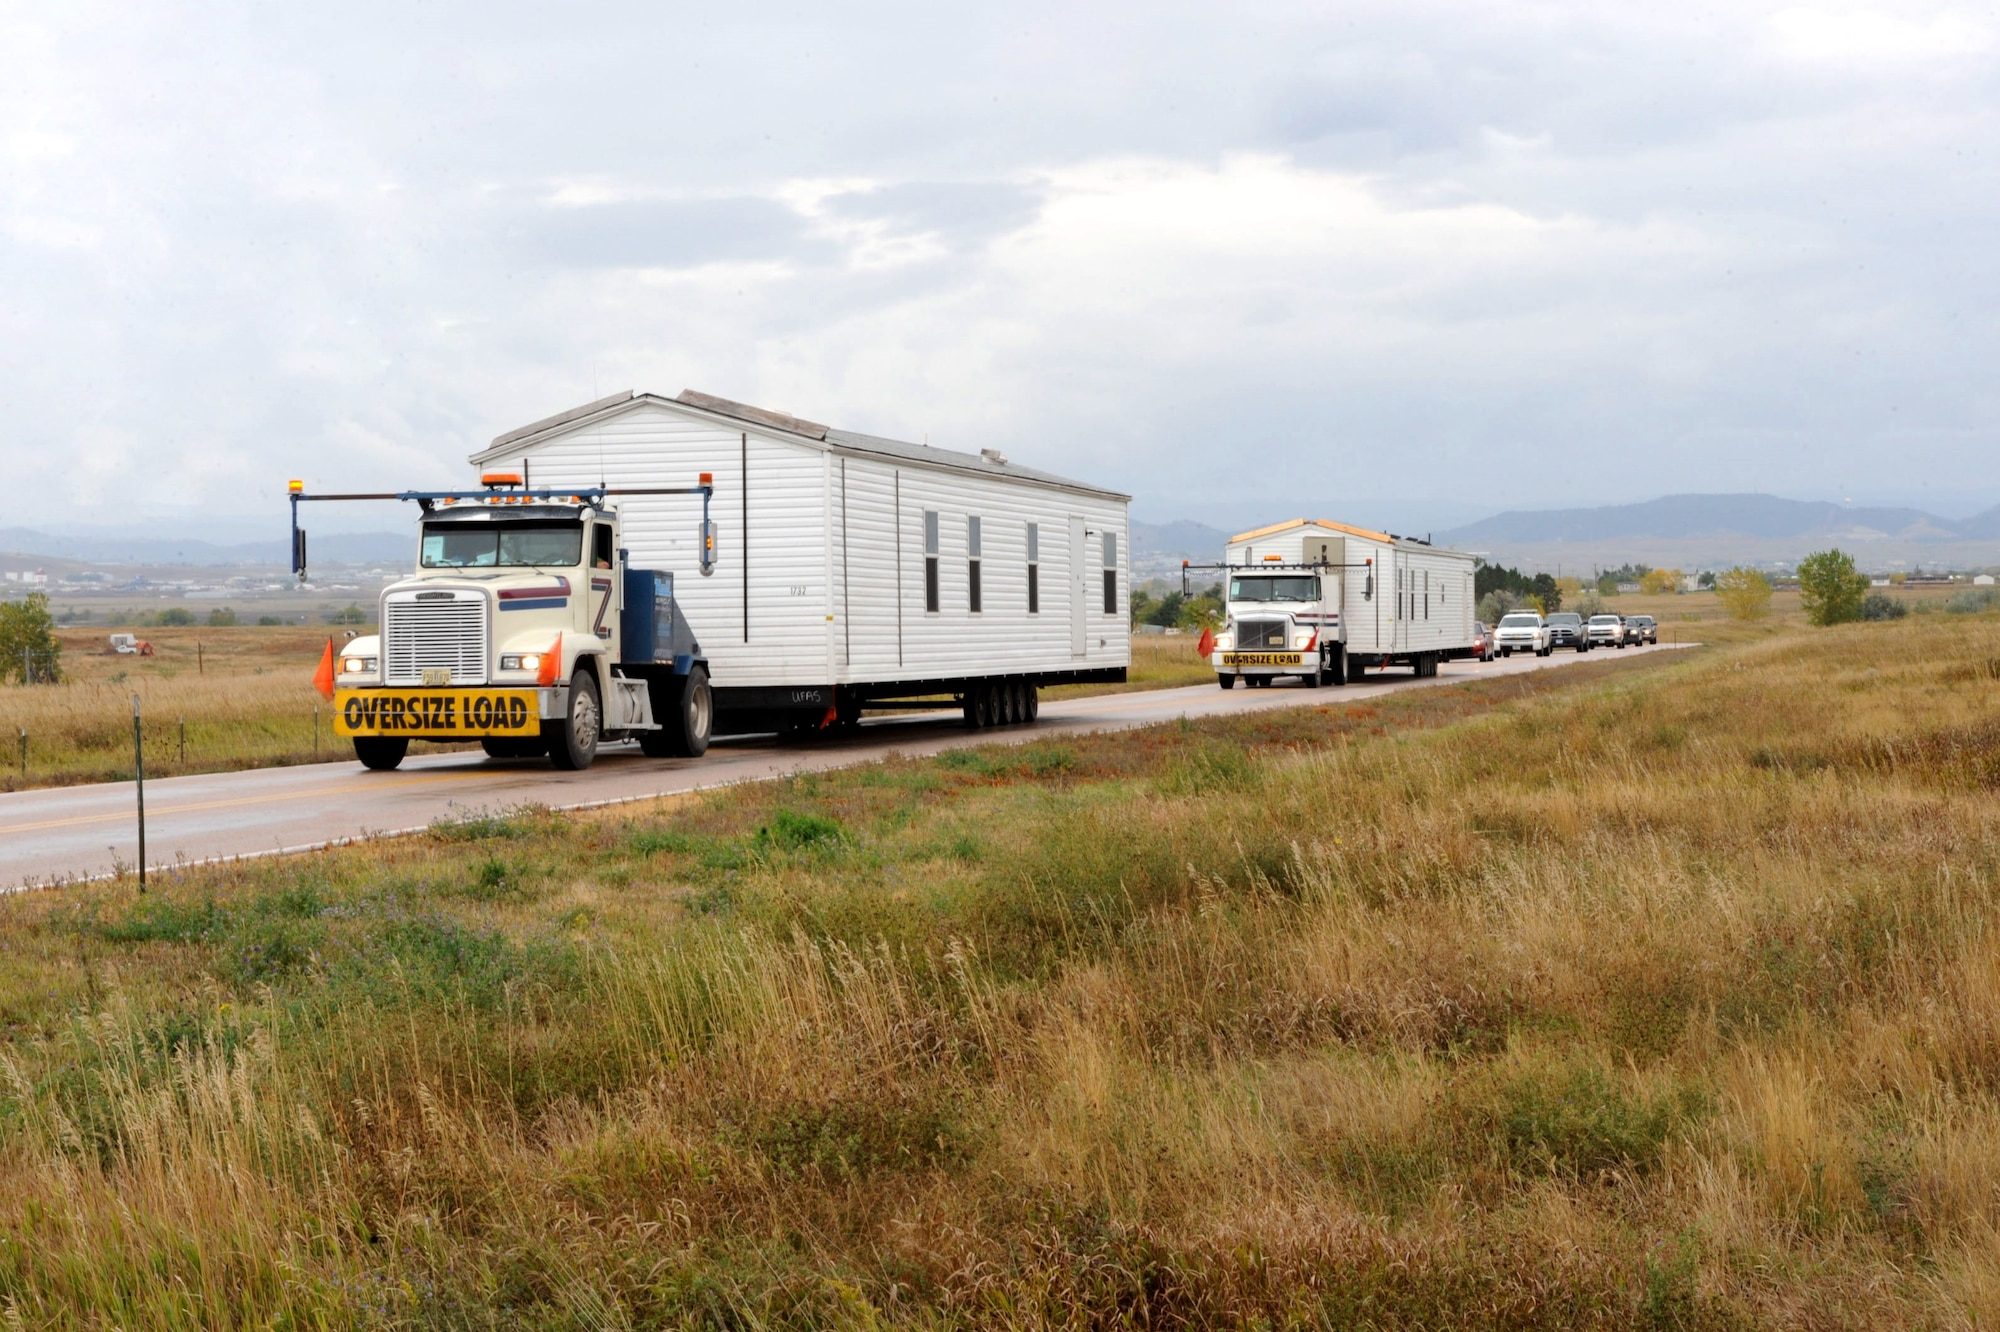 The first two manufactured housing units, part of the Federal Emergency Management Agency's response and recovery efforts related to severe storms and flooding on the Pine Ridge Indian Reservation, arrived at Ellsworth Air Force Base, S.D., Oct. 8, 2015, after traveling from housing storage facilities in Selma, Ala., and Cumberland, Md. The base will serve as the staging area for the FEMA operation, providing space to store the units that will be used to house residents with damaged homes. (U.S. Air Force photo/Airman 1st Class Denise Nevins)